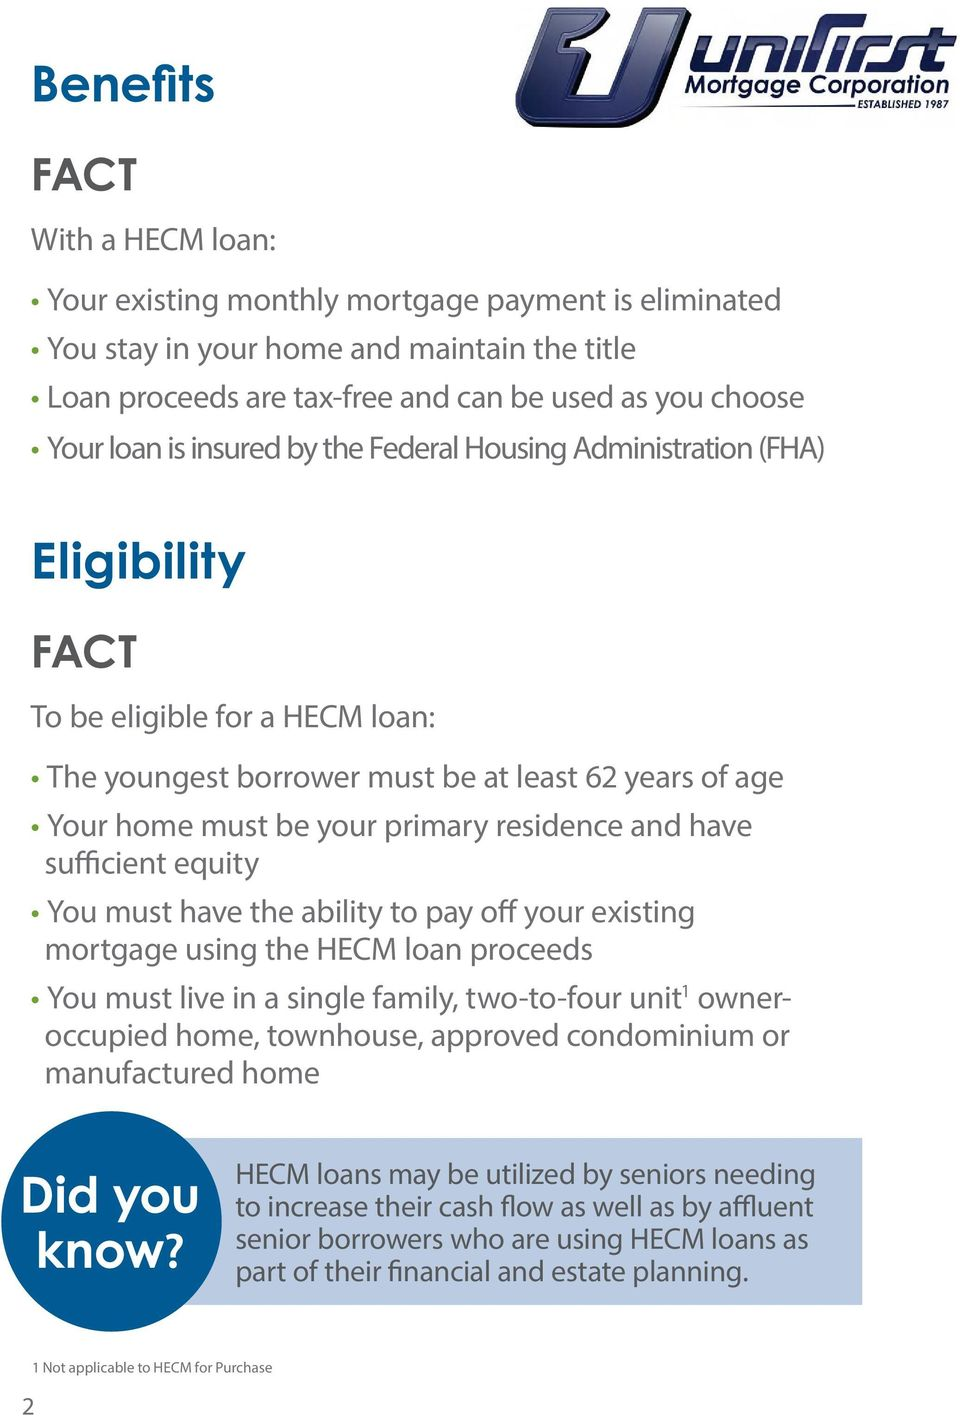 sufficient equity You must have the ability to pay off your existing mortgage using the HECM loan proceeds You must live in a single family, two-to-four unit 1 owneroccupied home, townhouse, approved